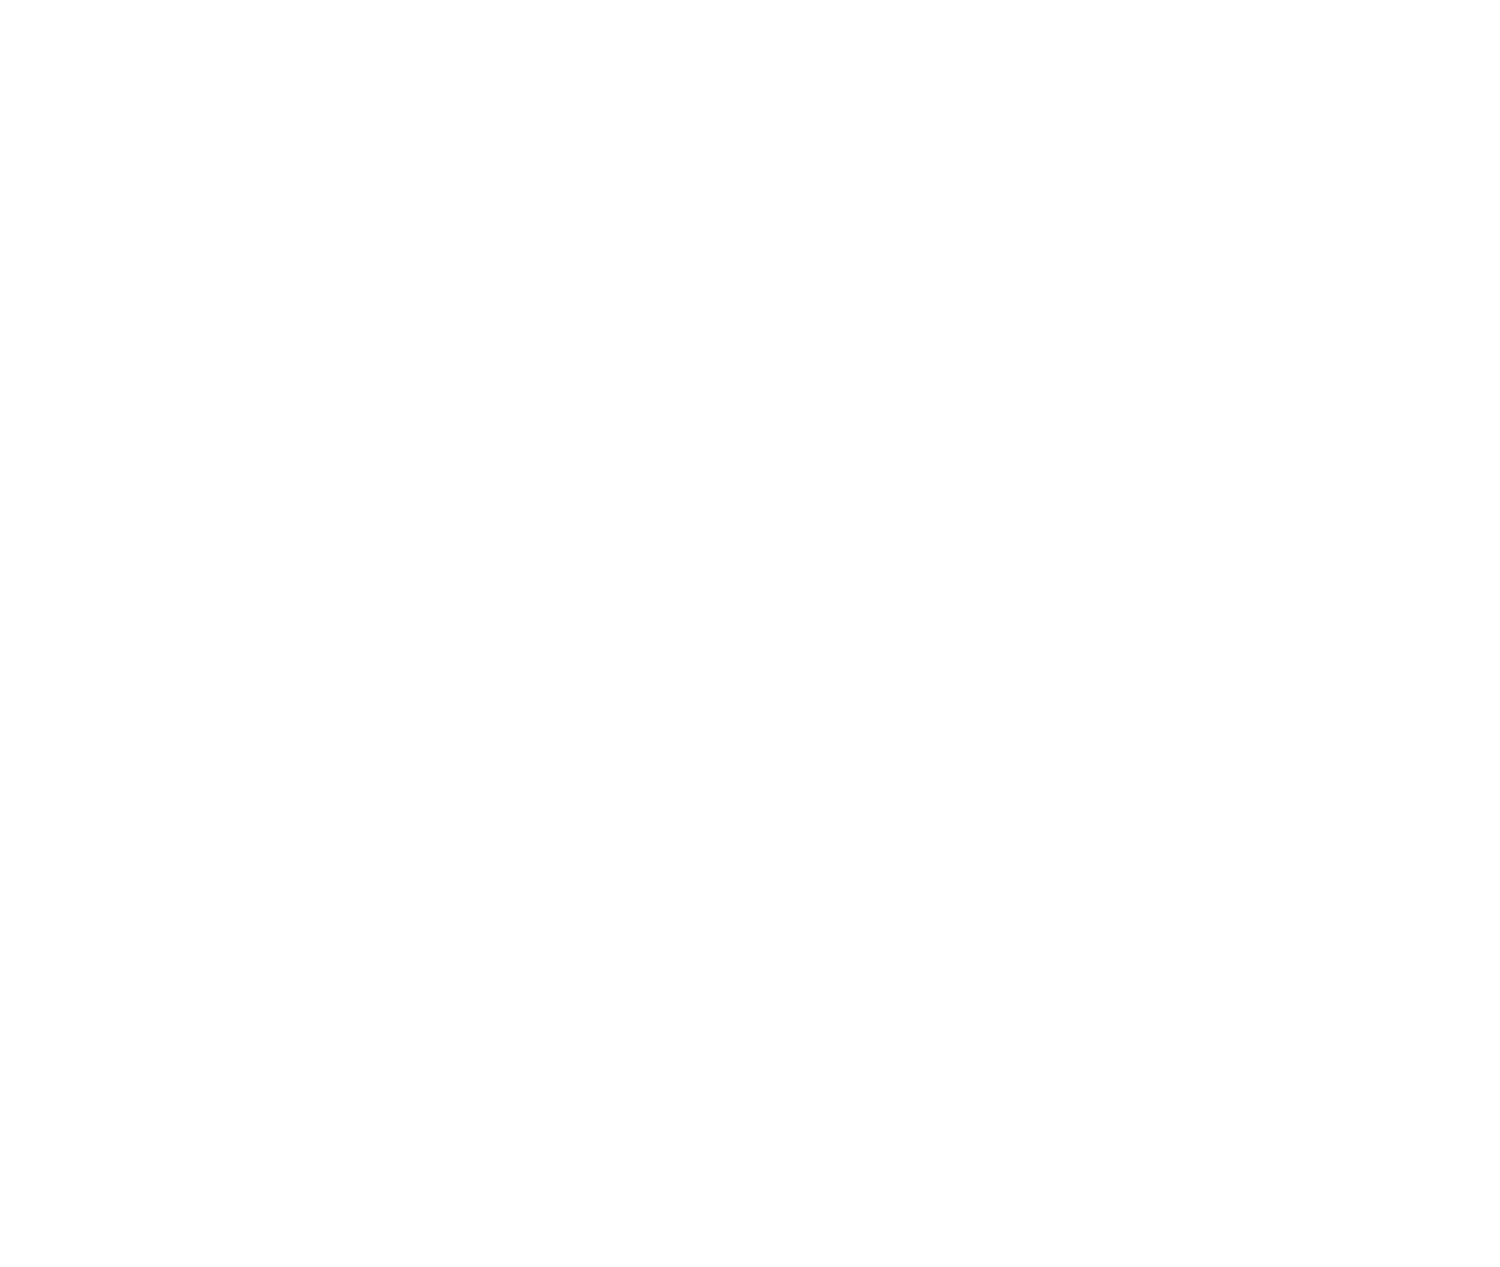 D LOUNGE ART EXPERIENCE